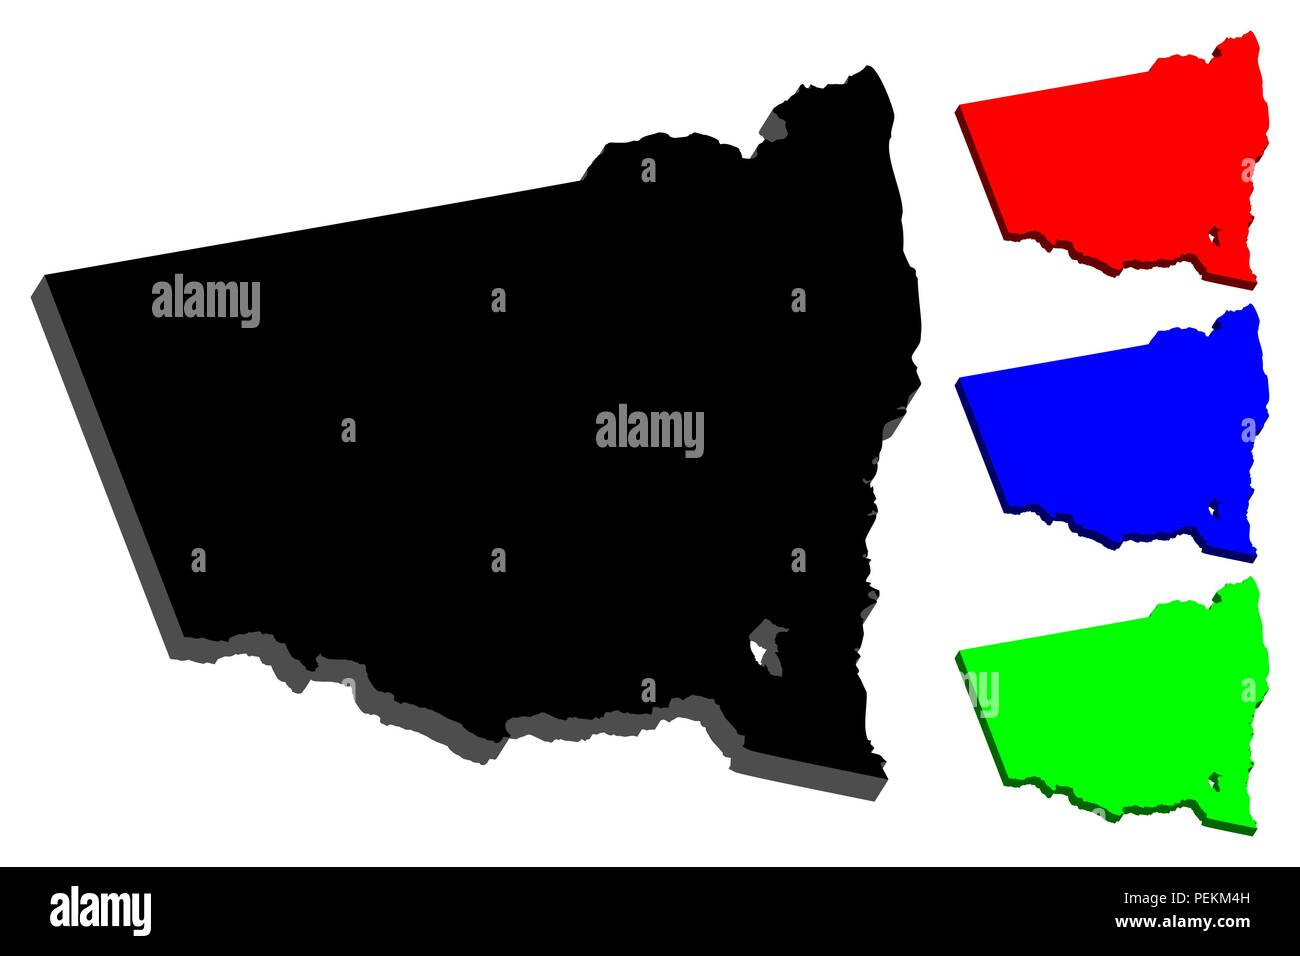 3d Map Of South Australia.3d Map Of New South Wales Australian States And Territories Nsw